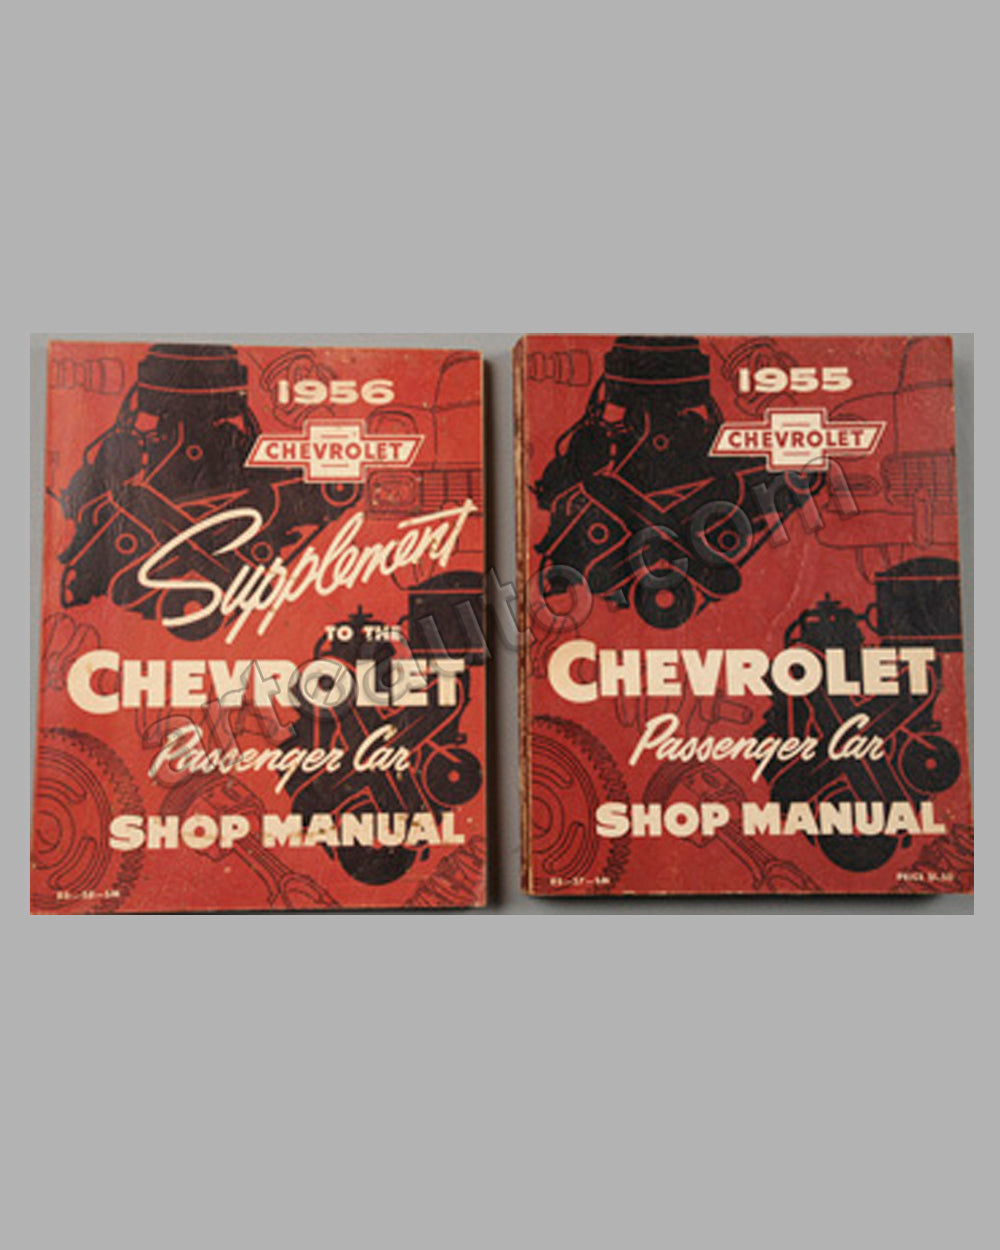 Two Chevrolet Shop Manuals published by the factory